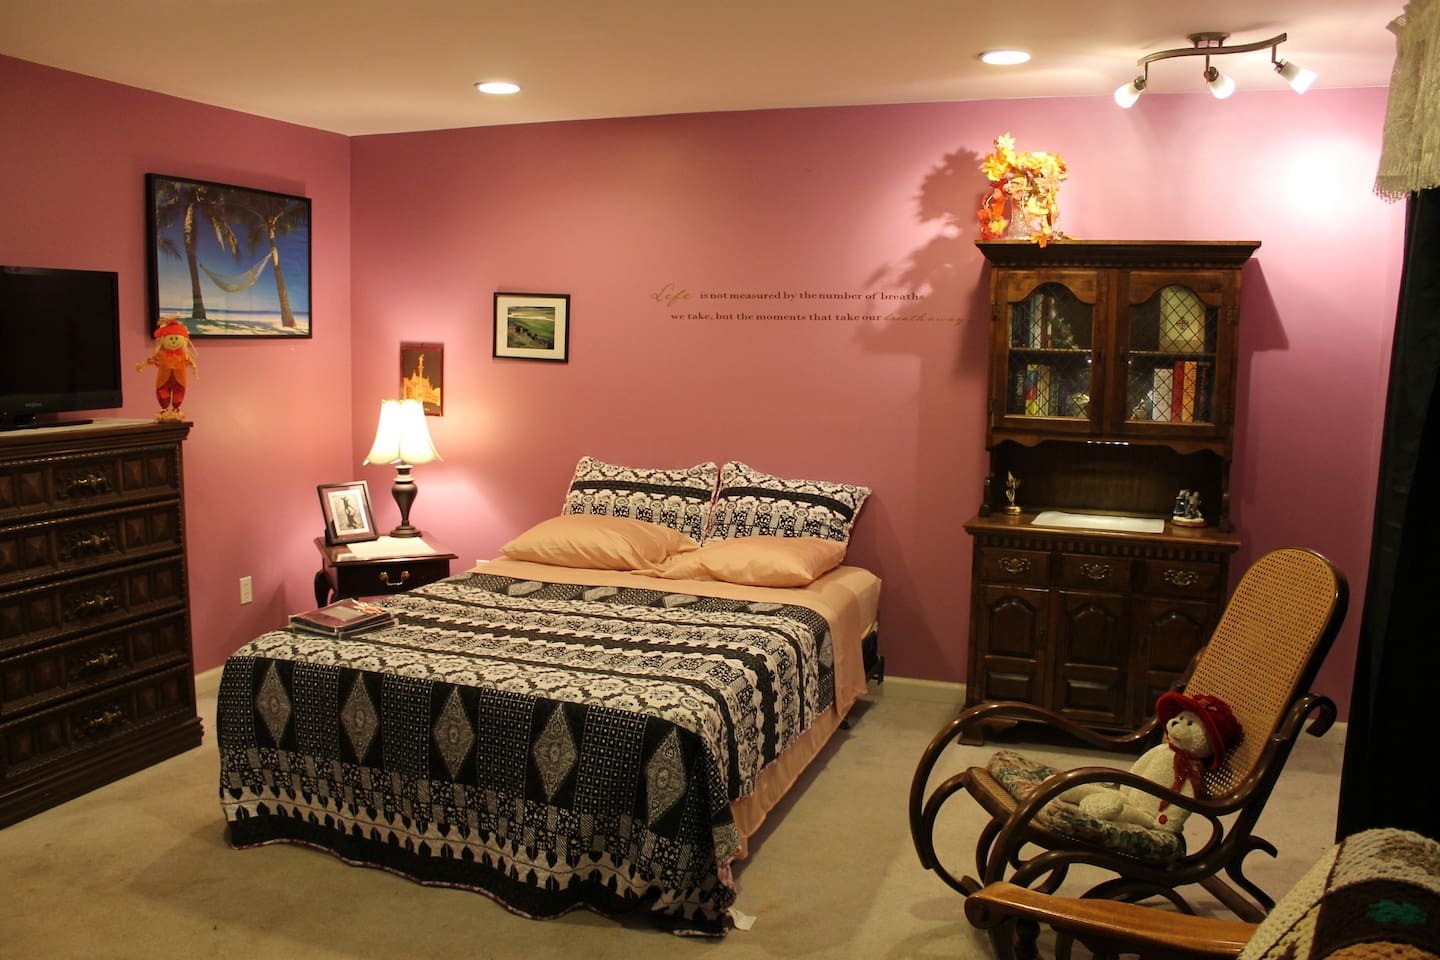 """Bdrm #1, 18'x15' w 5'x7' Walk-In Closet, Queen Bed, w 5-drw dresser, extra cabinet, large desk, 36"""" Cable TV, Recliner/Rocker and Rocking Chair."""